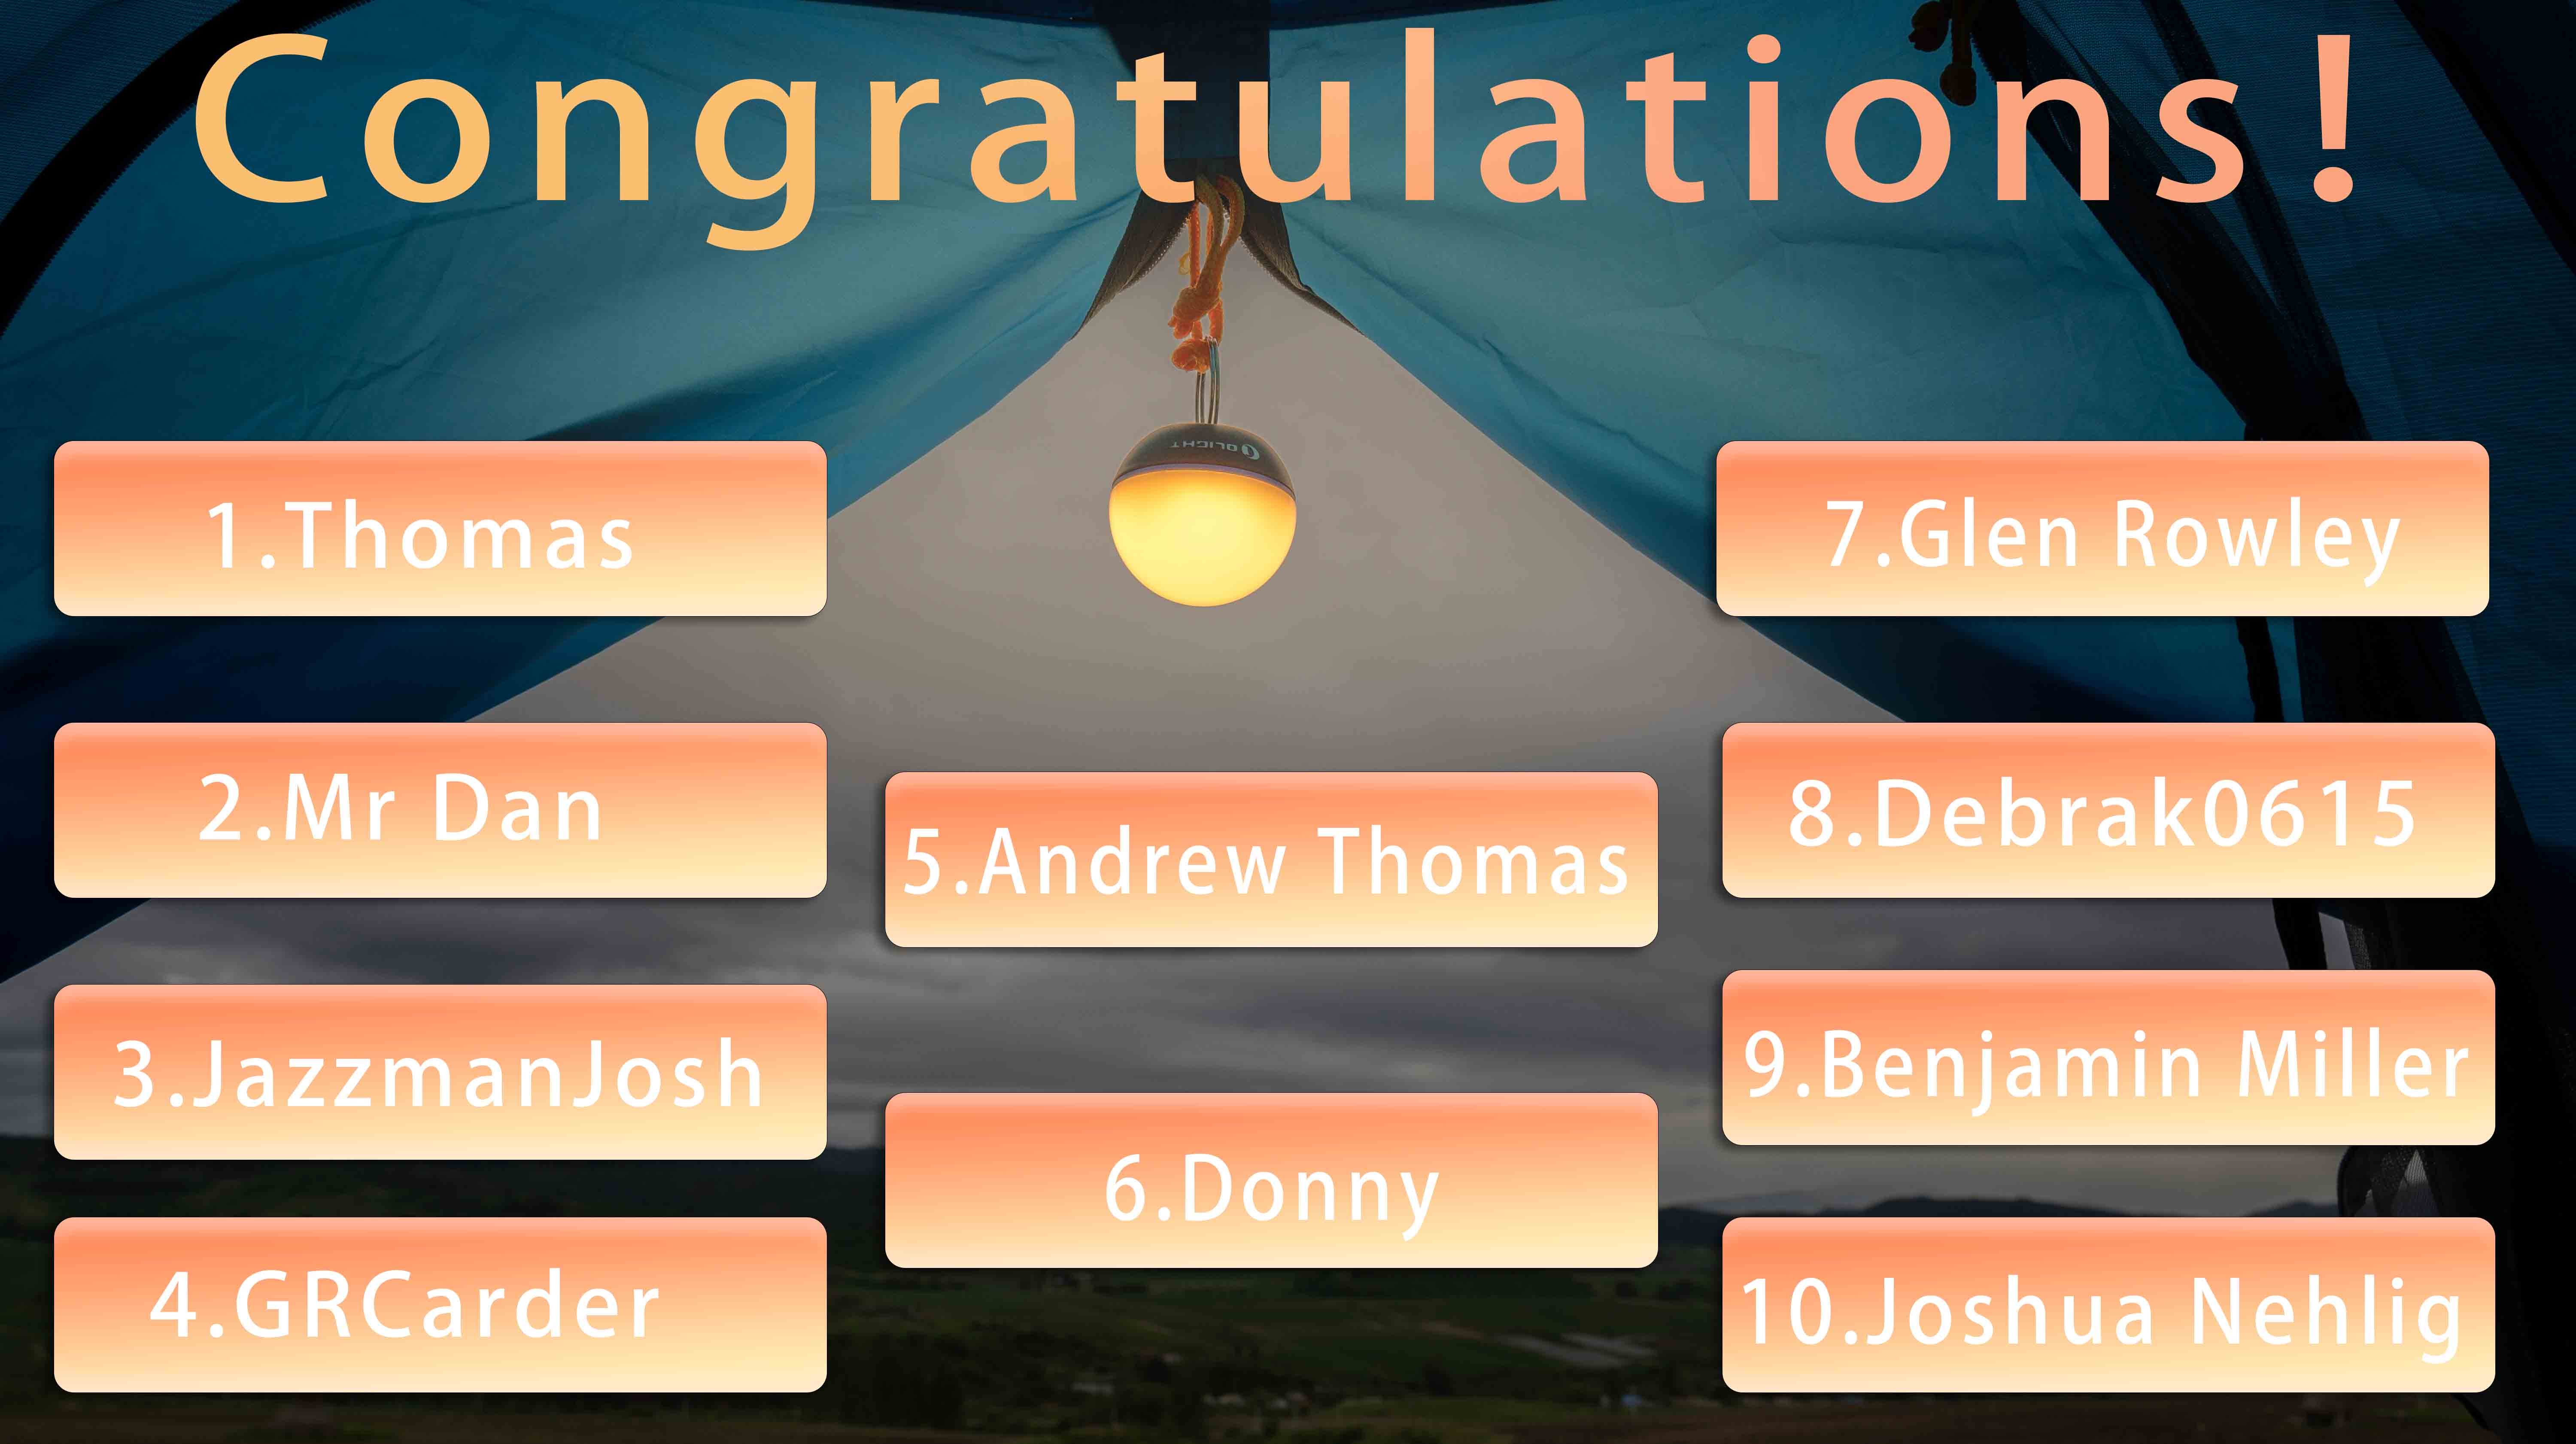 【Congratulations】To the 10 winners of the Last Obulb MC Giveaway!